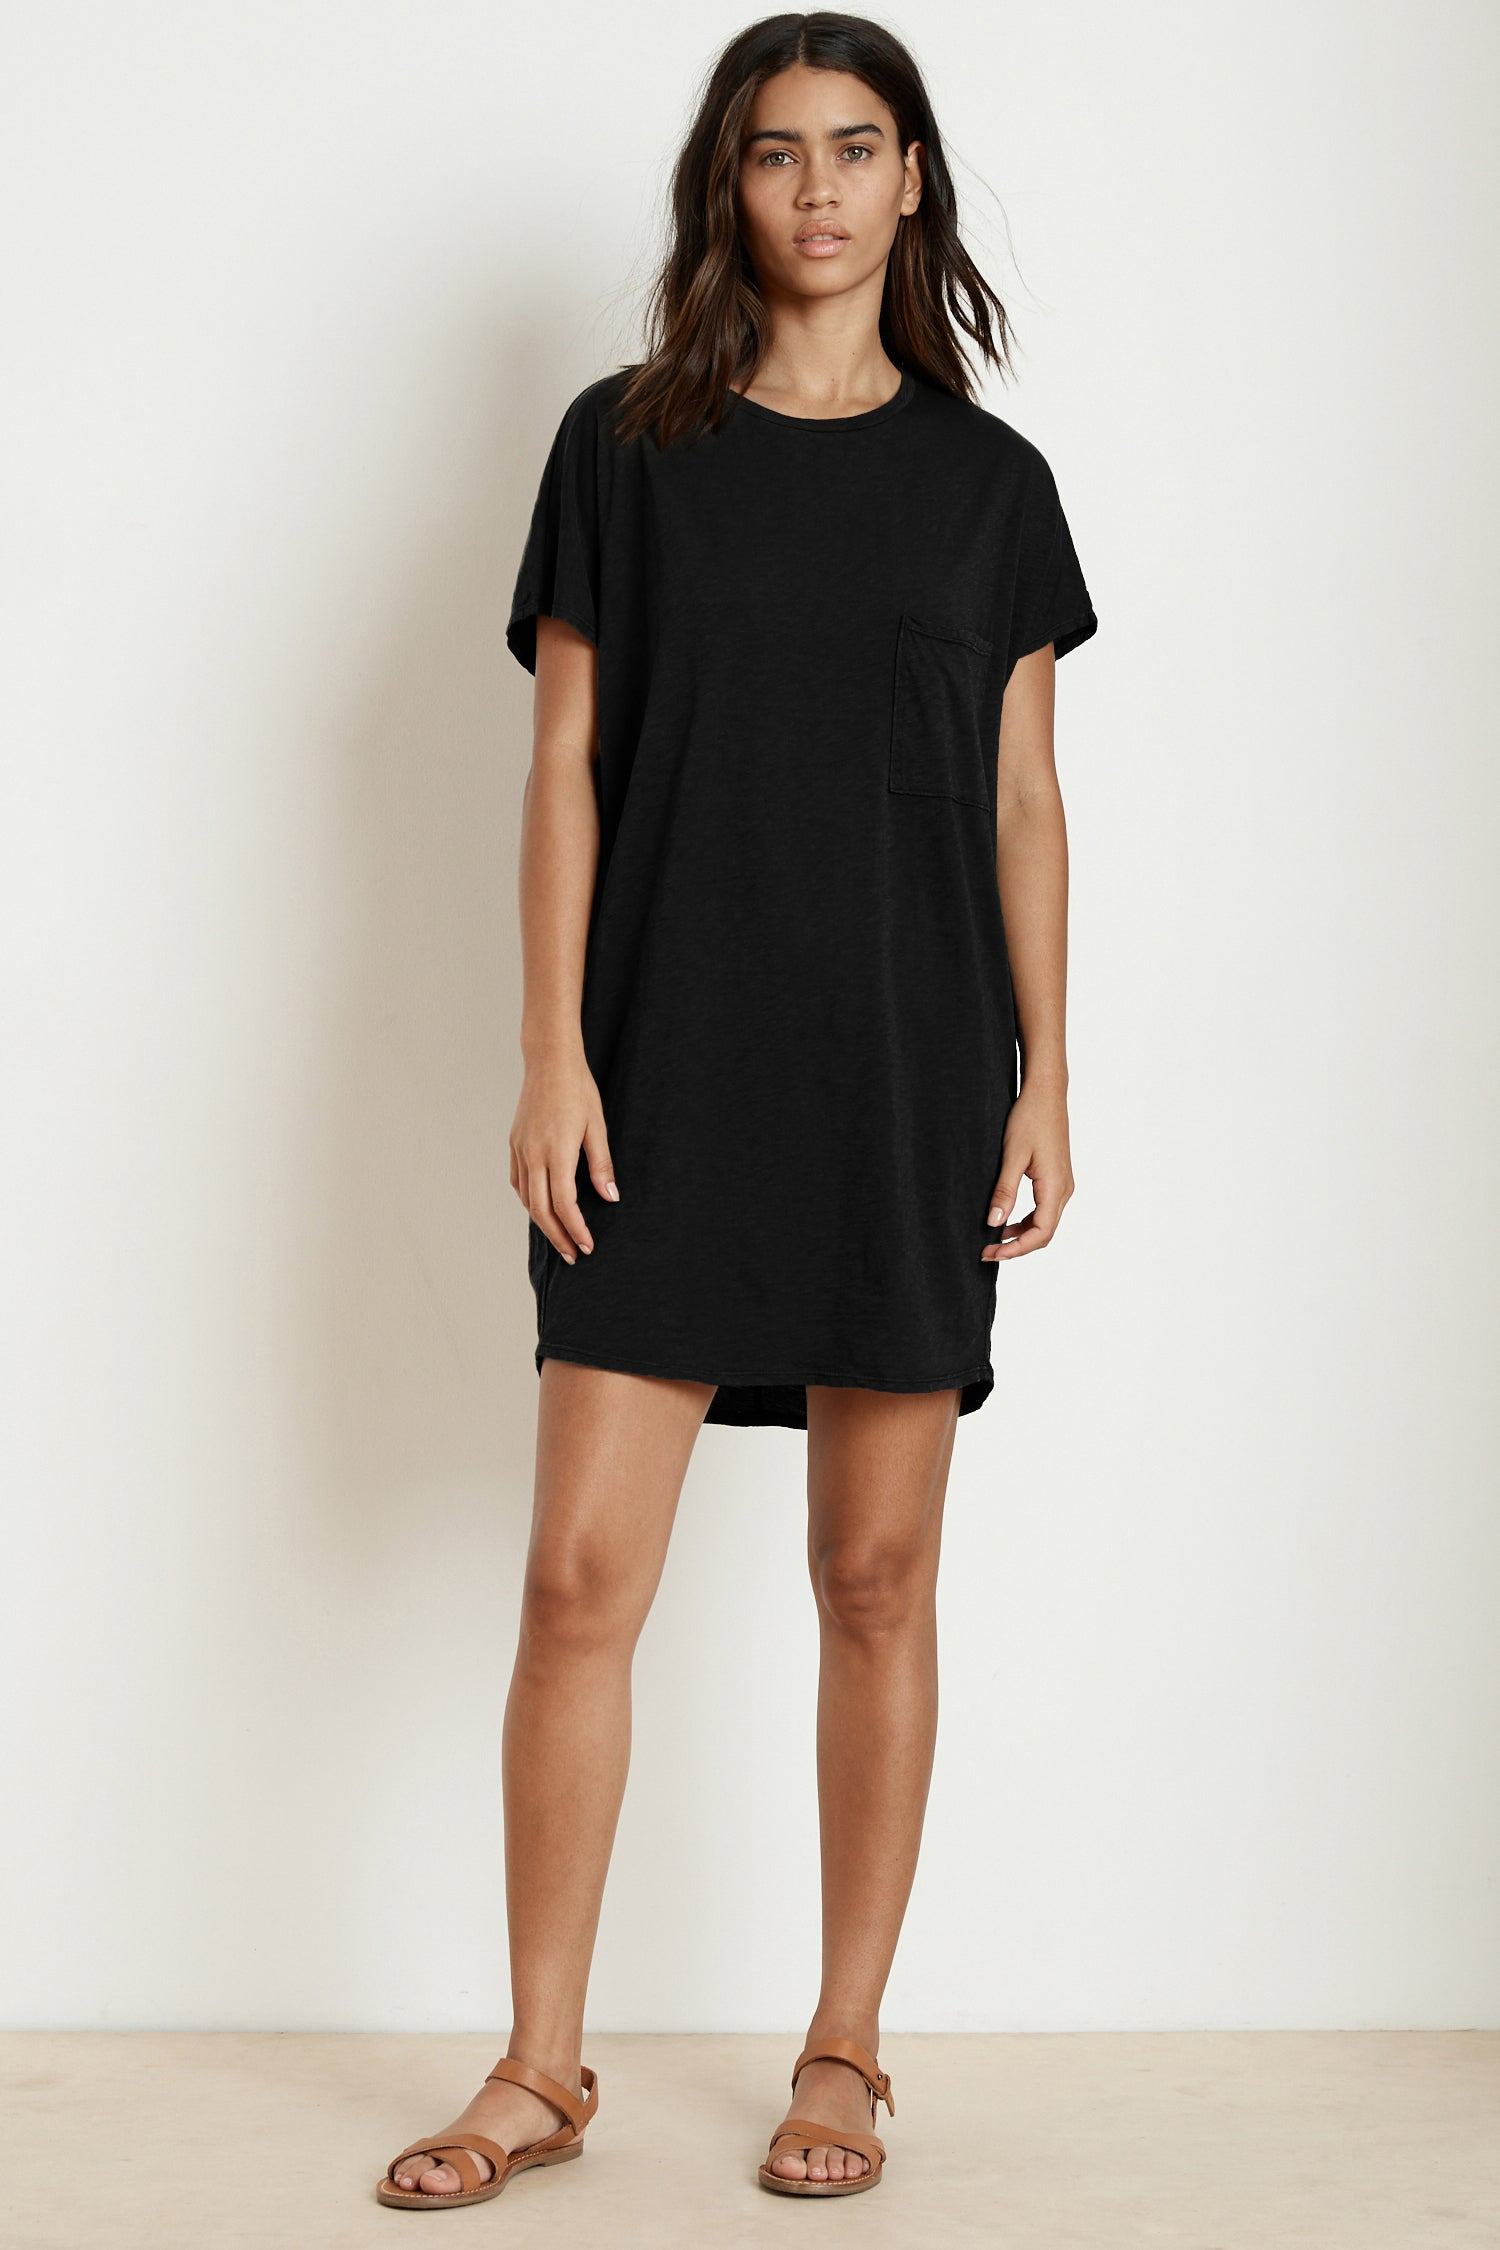 ANNIE COTTON SLUB T-SHIRT DRESS IN BLACK